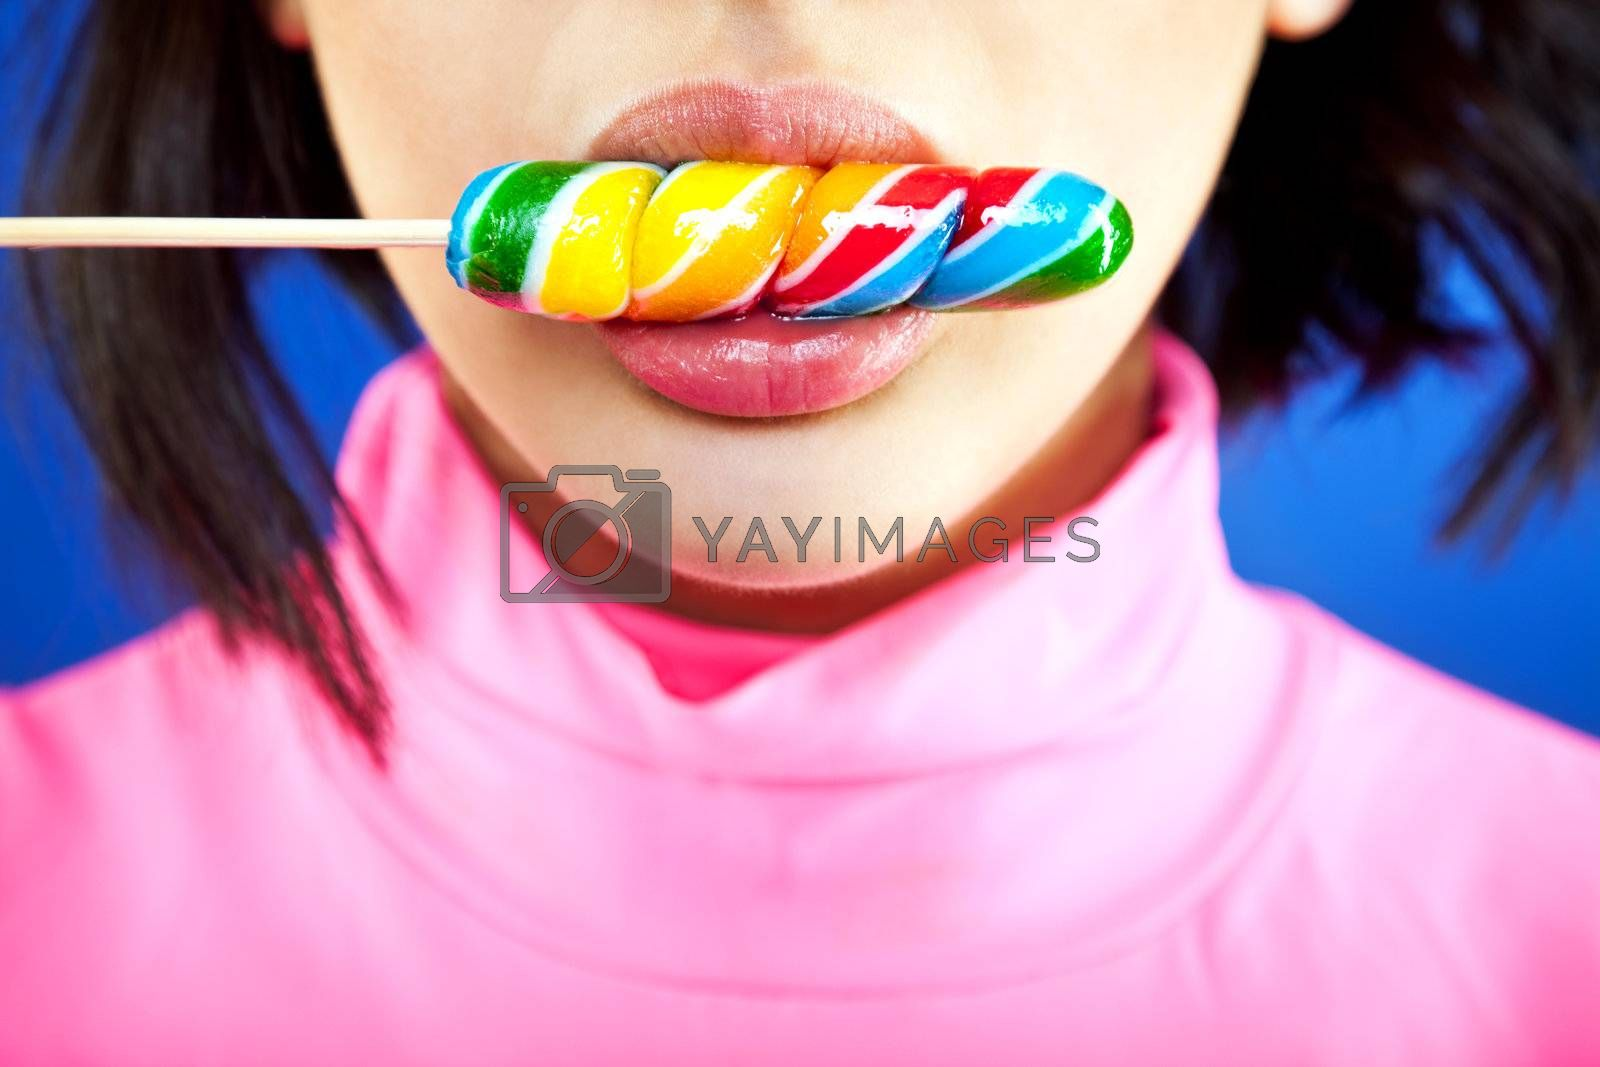 Close-up of a girl's mouth licking a lollipop